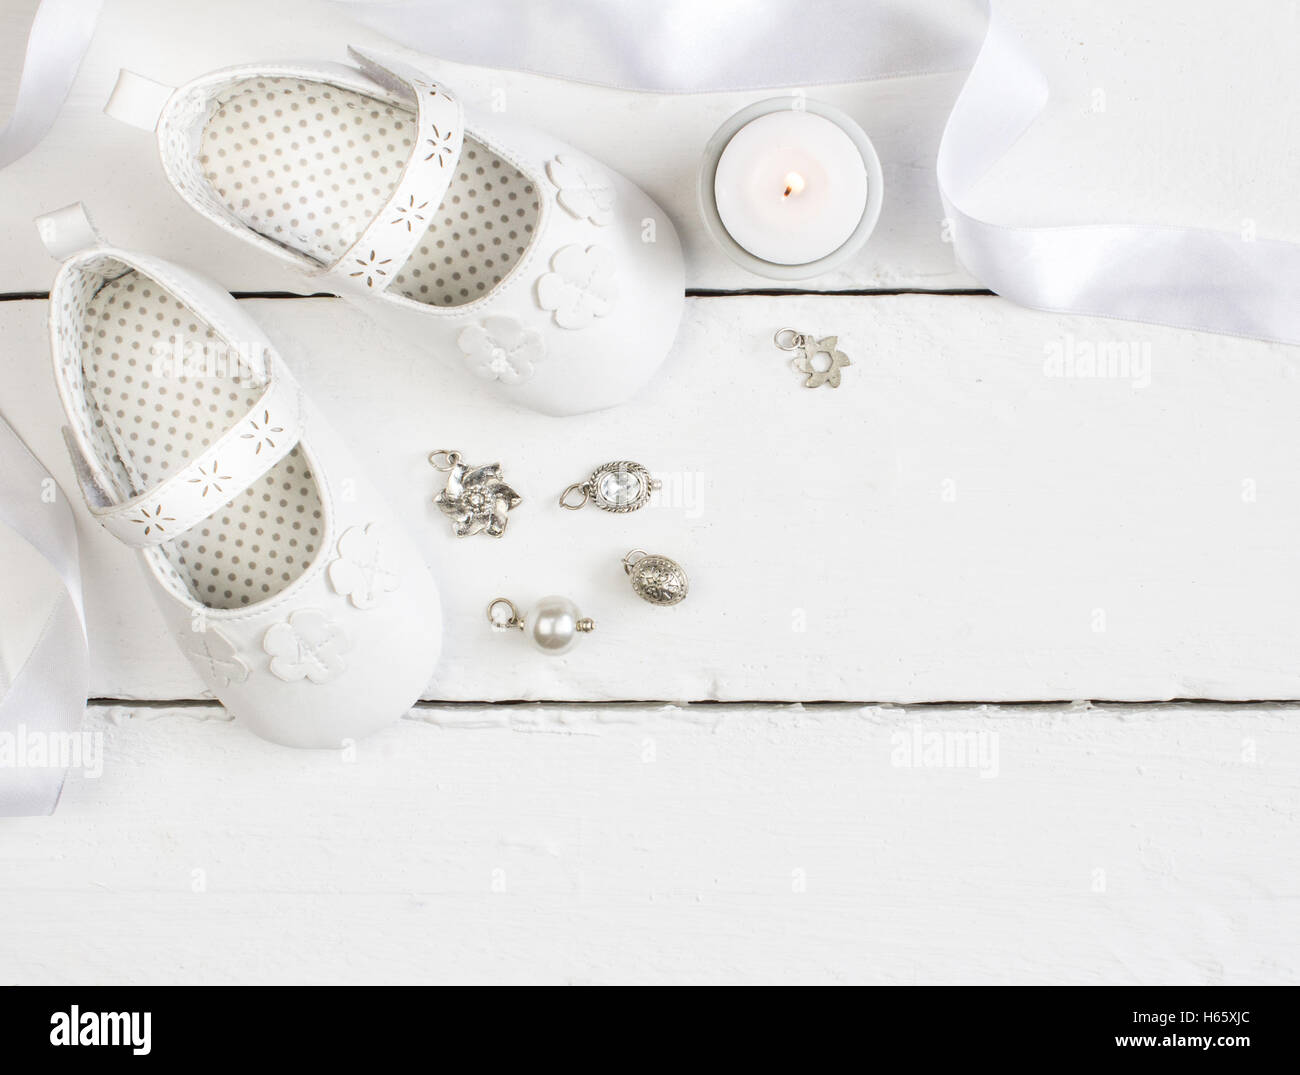 Overhead photo of pair of white baby booties, candle, ribbon and charms on white painted table - Stock Image